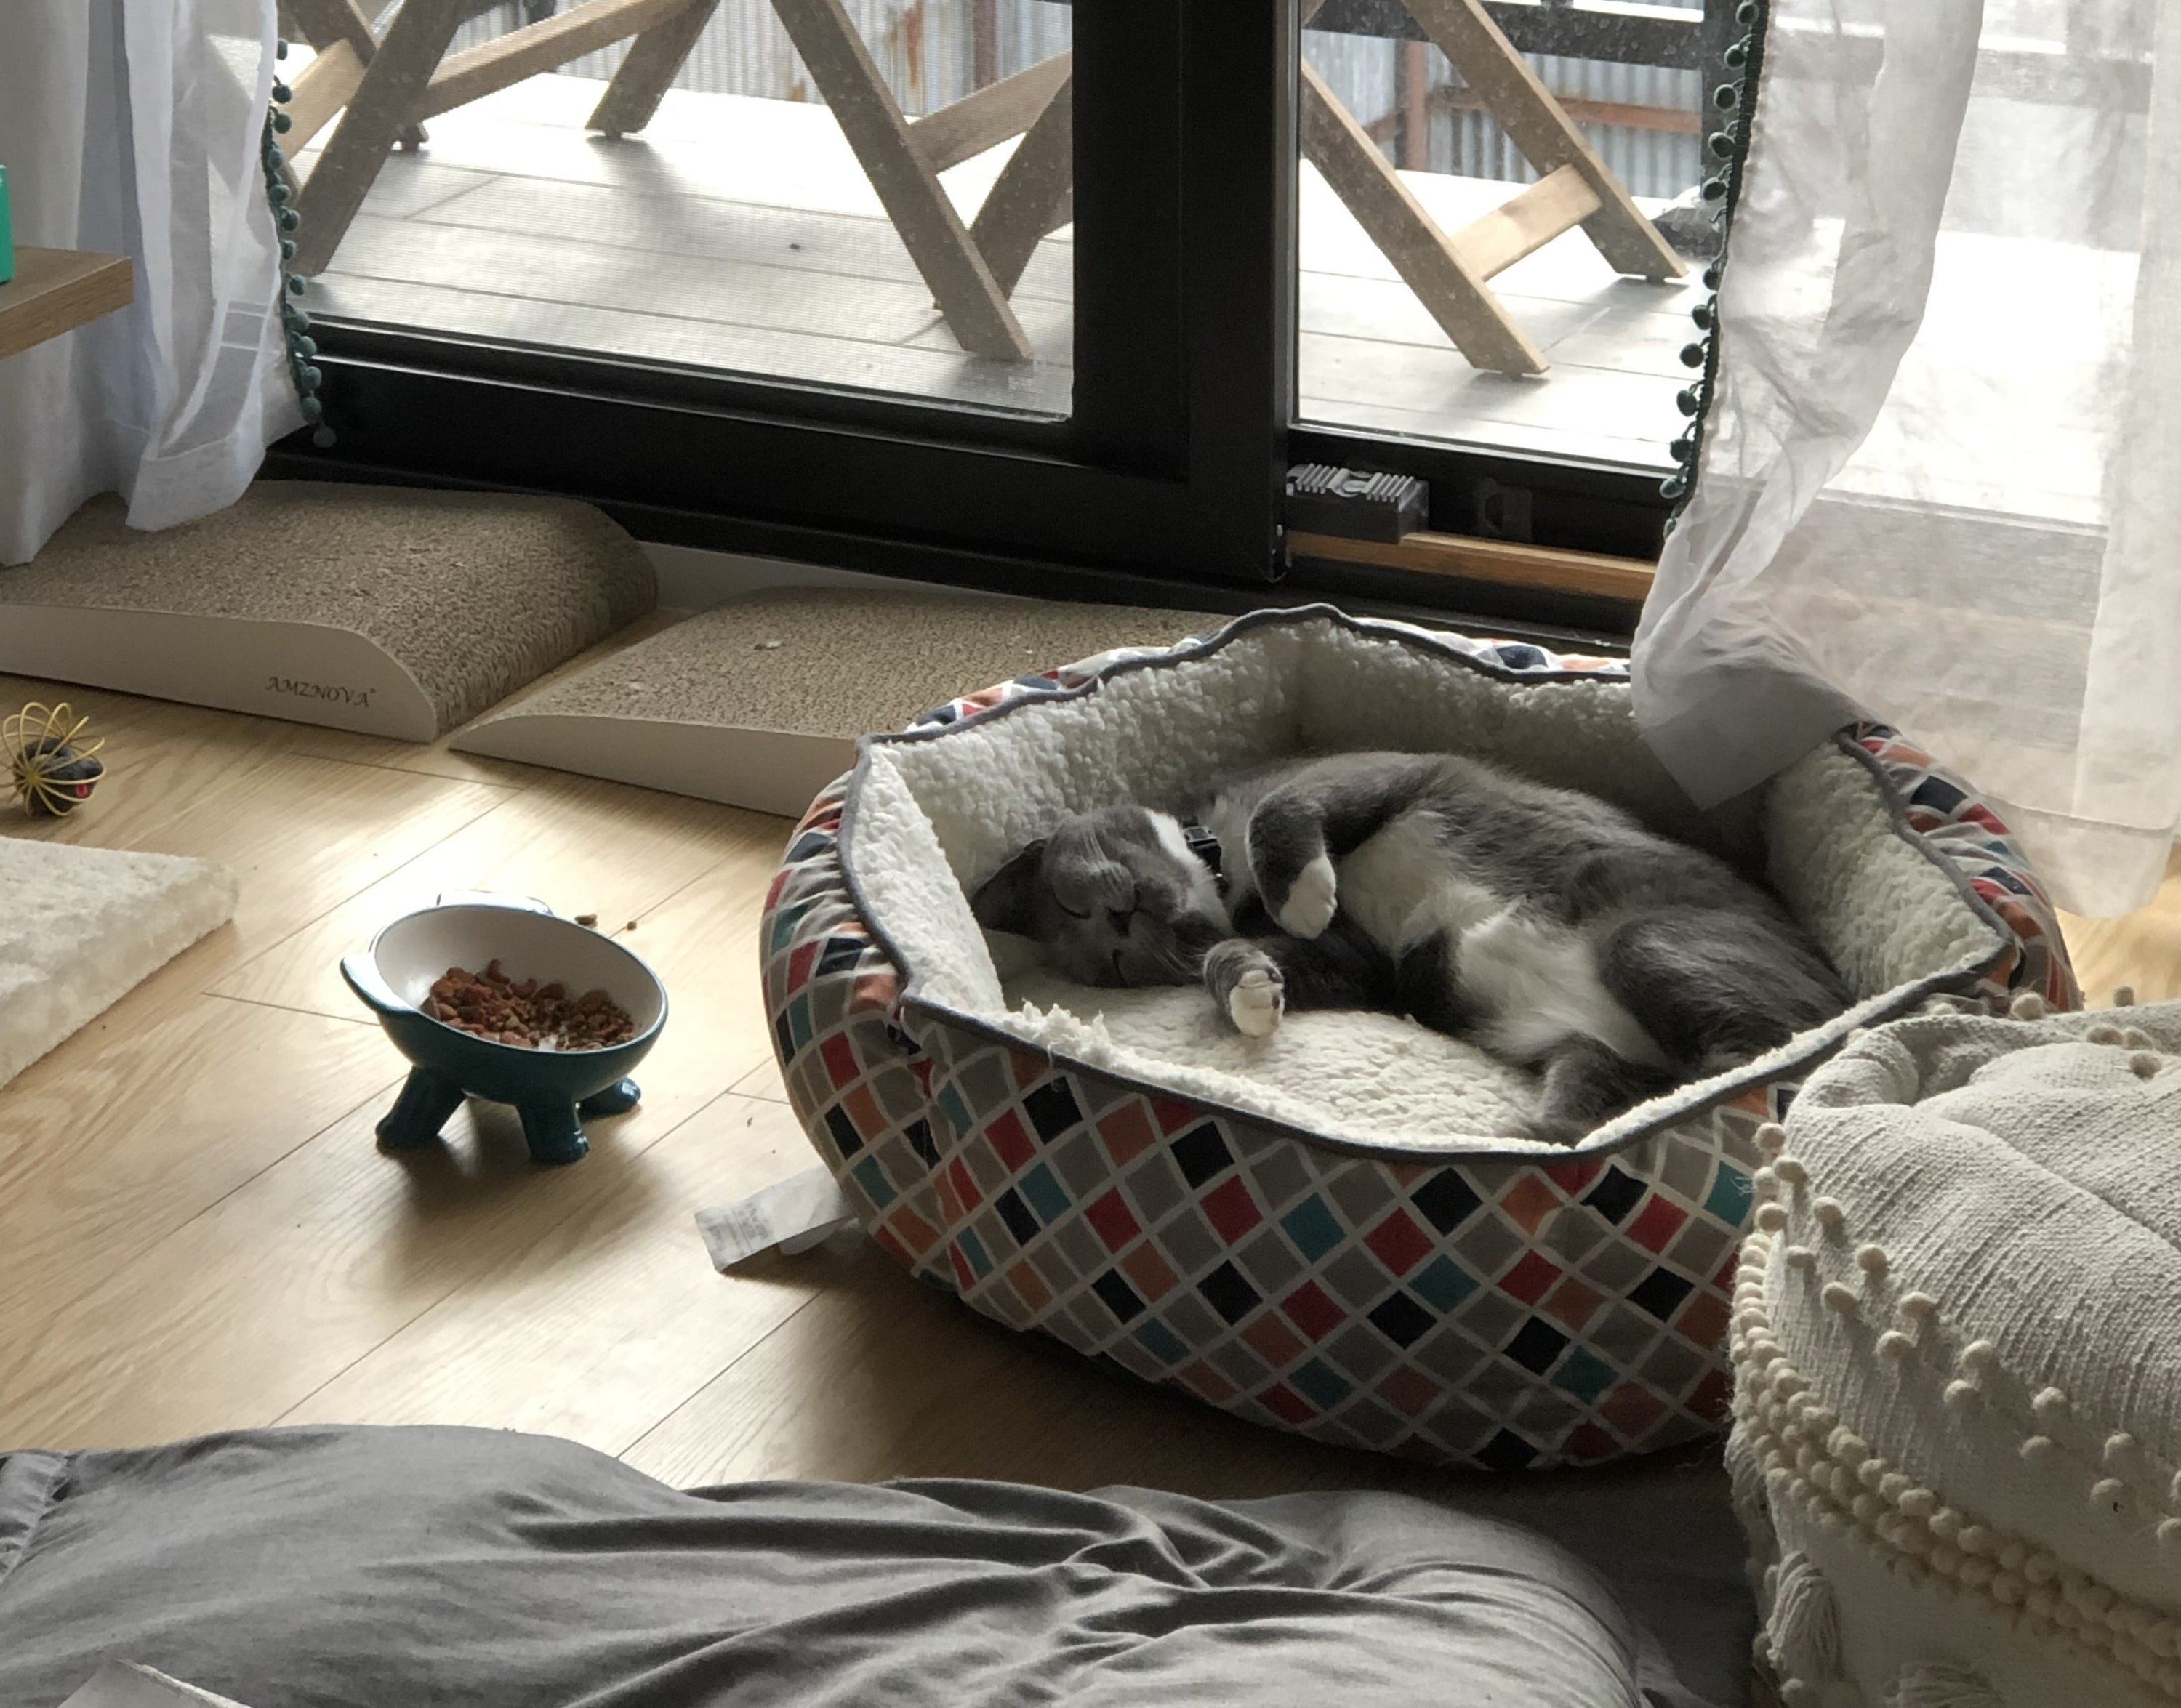 a BuzzFeed editor's cat laying in the geometric bed